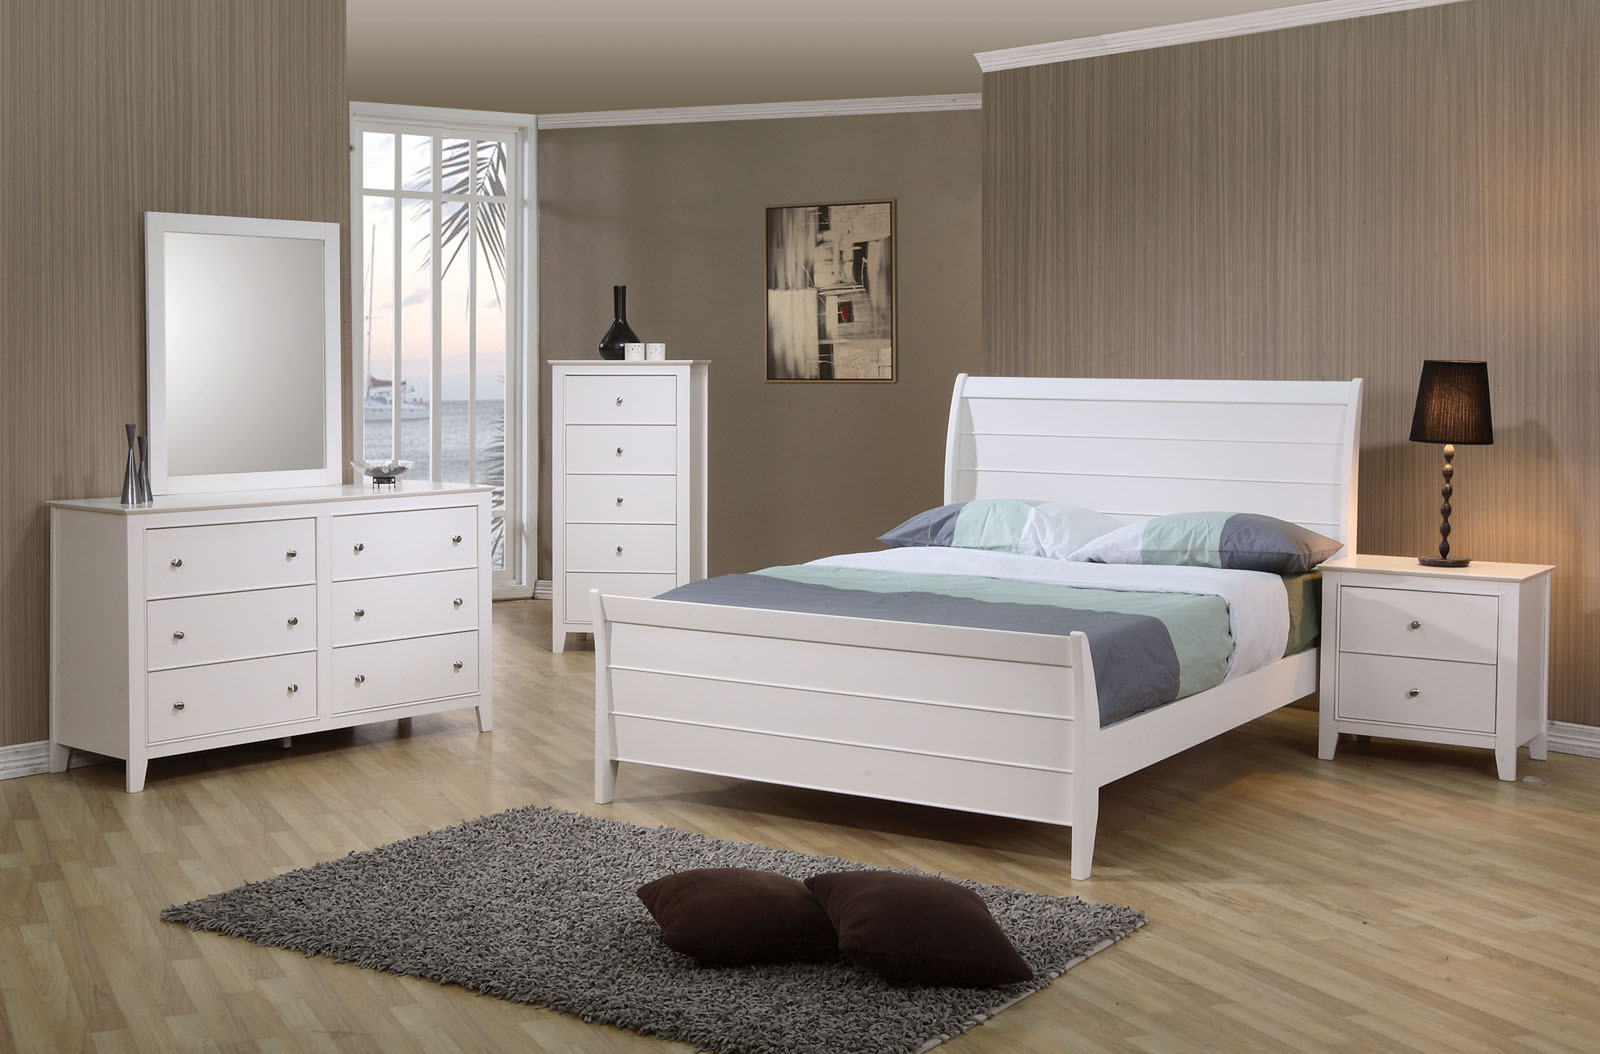 Best ideas about Full Size Bedroom Set . Save or Pin Bedroom Furniture Full Size Bedroom Sets Now.